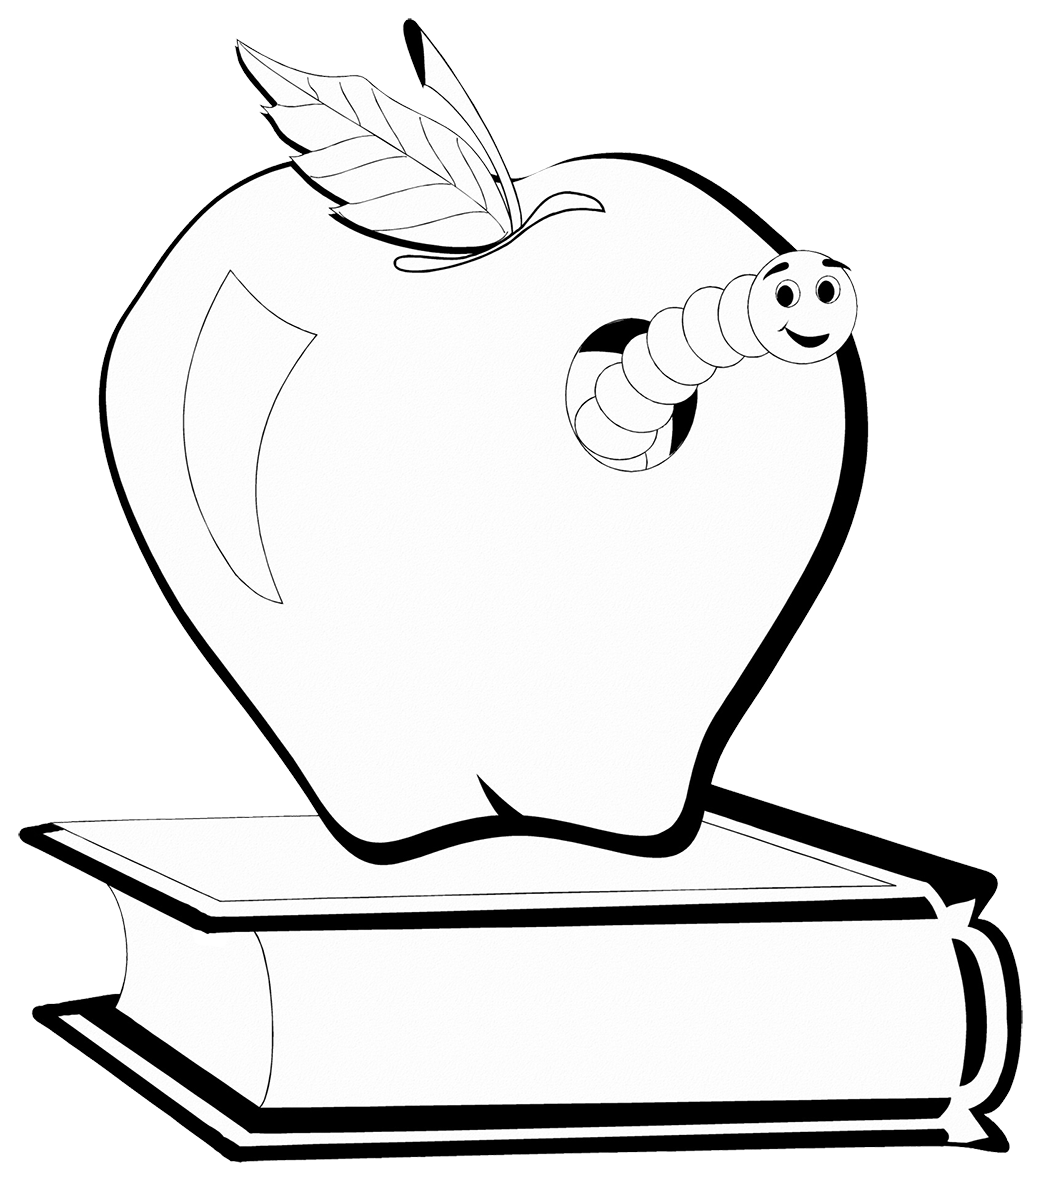 book worm on book in apple